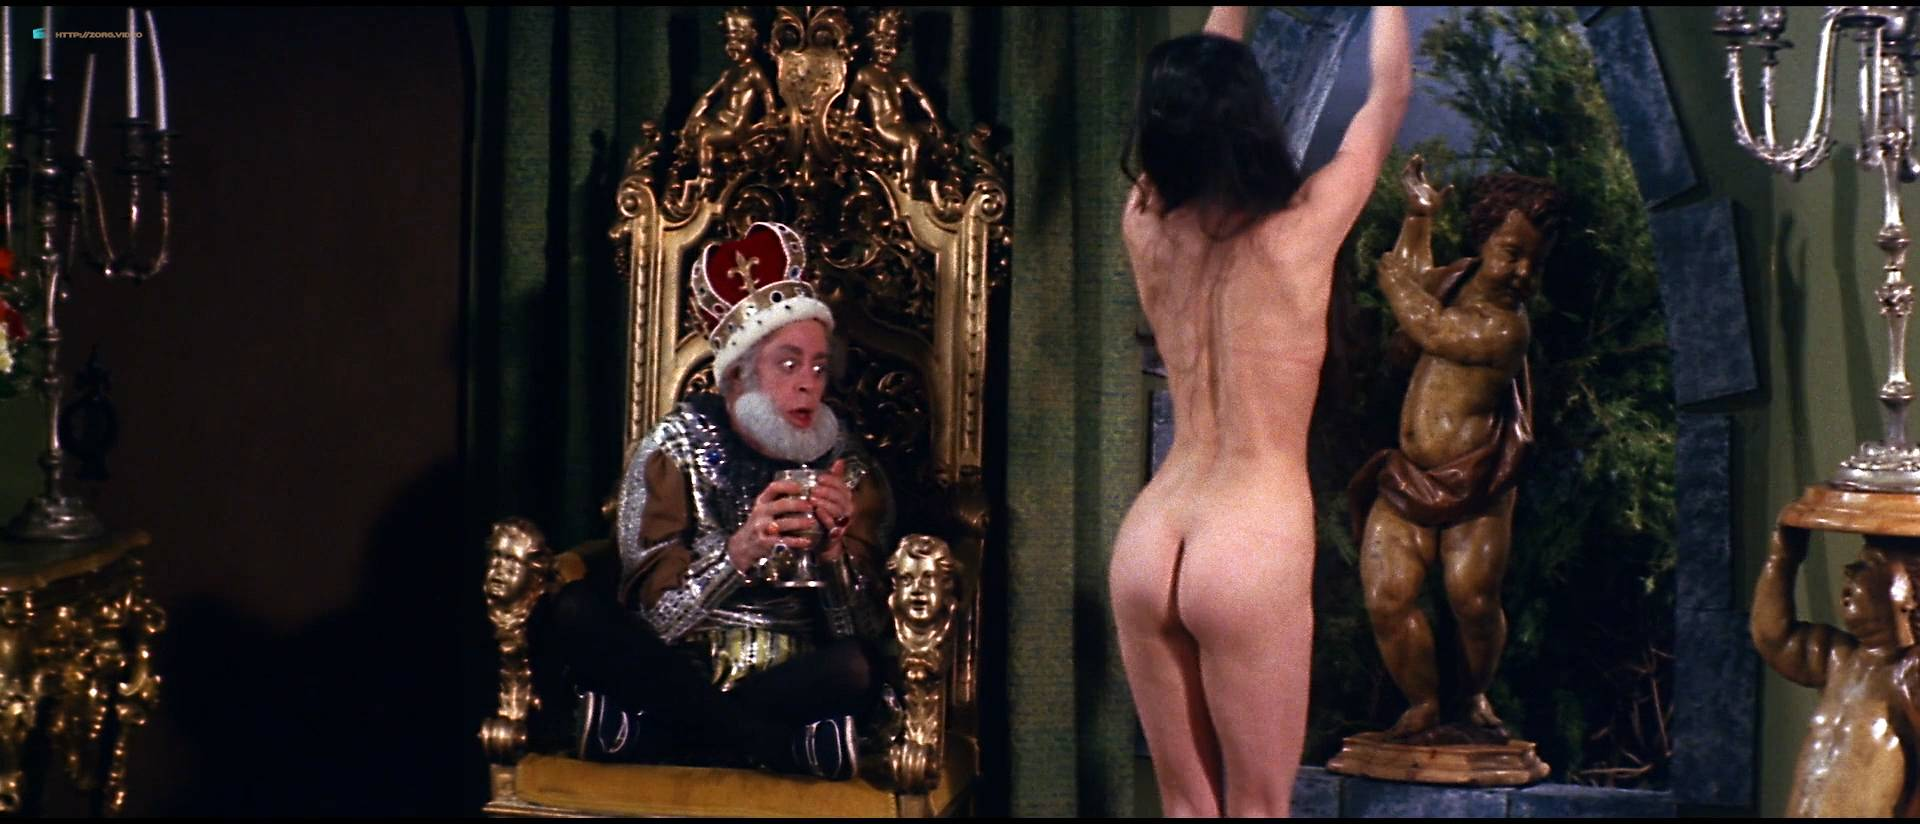 Linnea Quigley nude bush Angela Aames nude full frontal others nude - Fairy Tales (1978) HD 1080p (6)